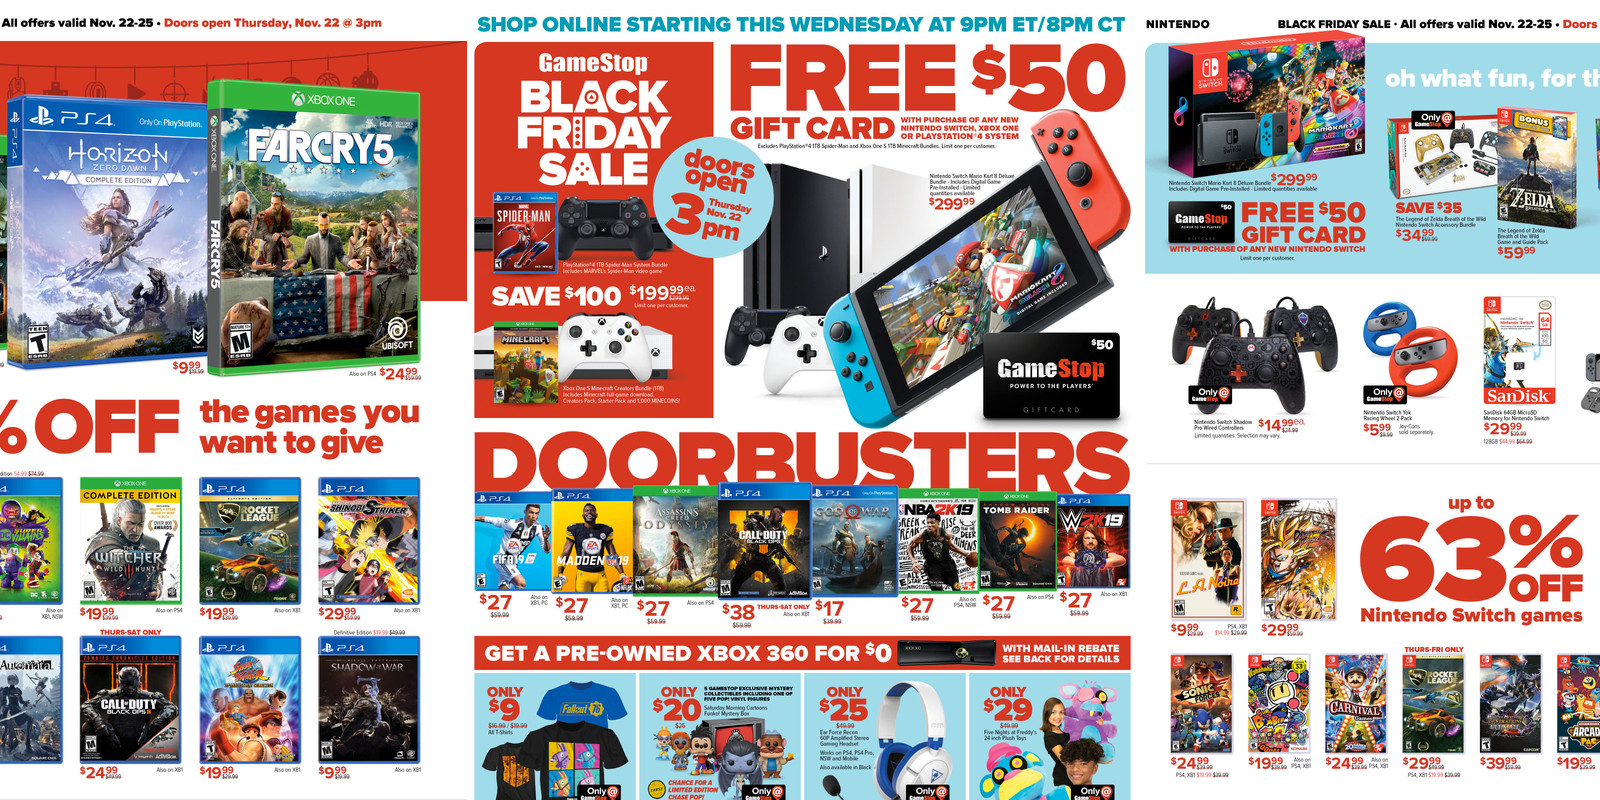 GameStop Black Friday Ad: $50 GC w/ Nintendo Switch, PS4 Pro, Games